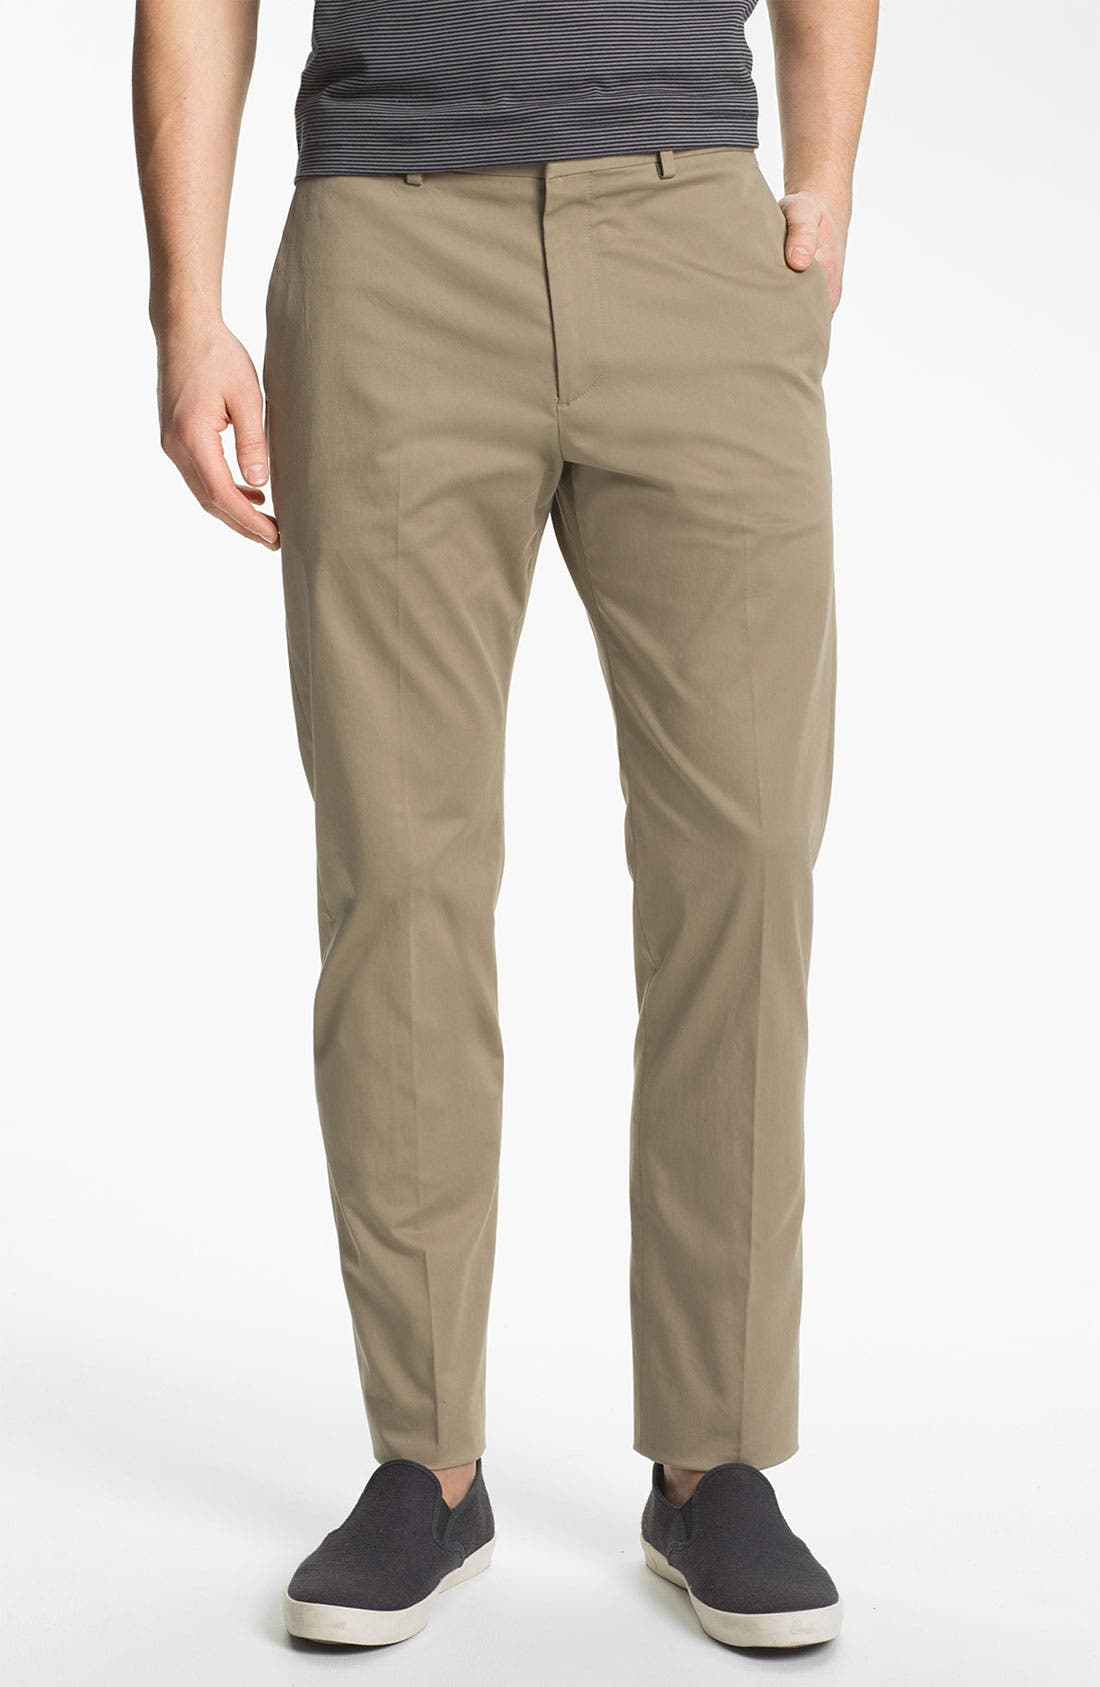 Main Image - Theory 'Jake W Ridott' Slim Cotton Blend Pants